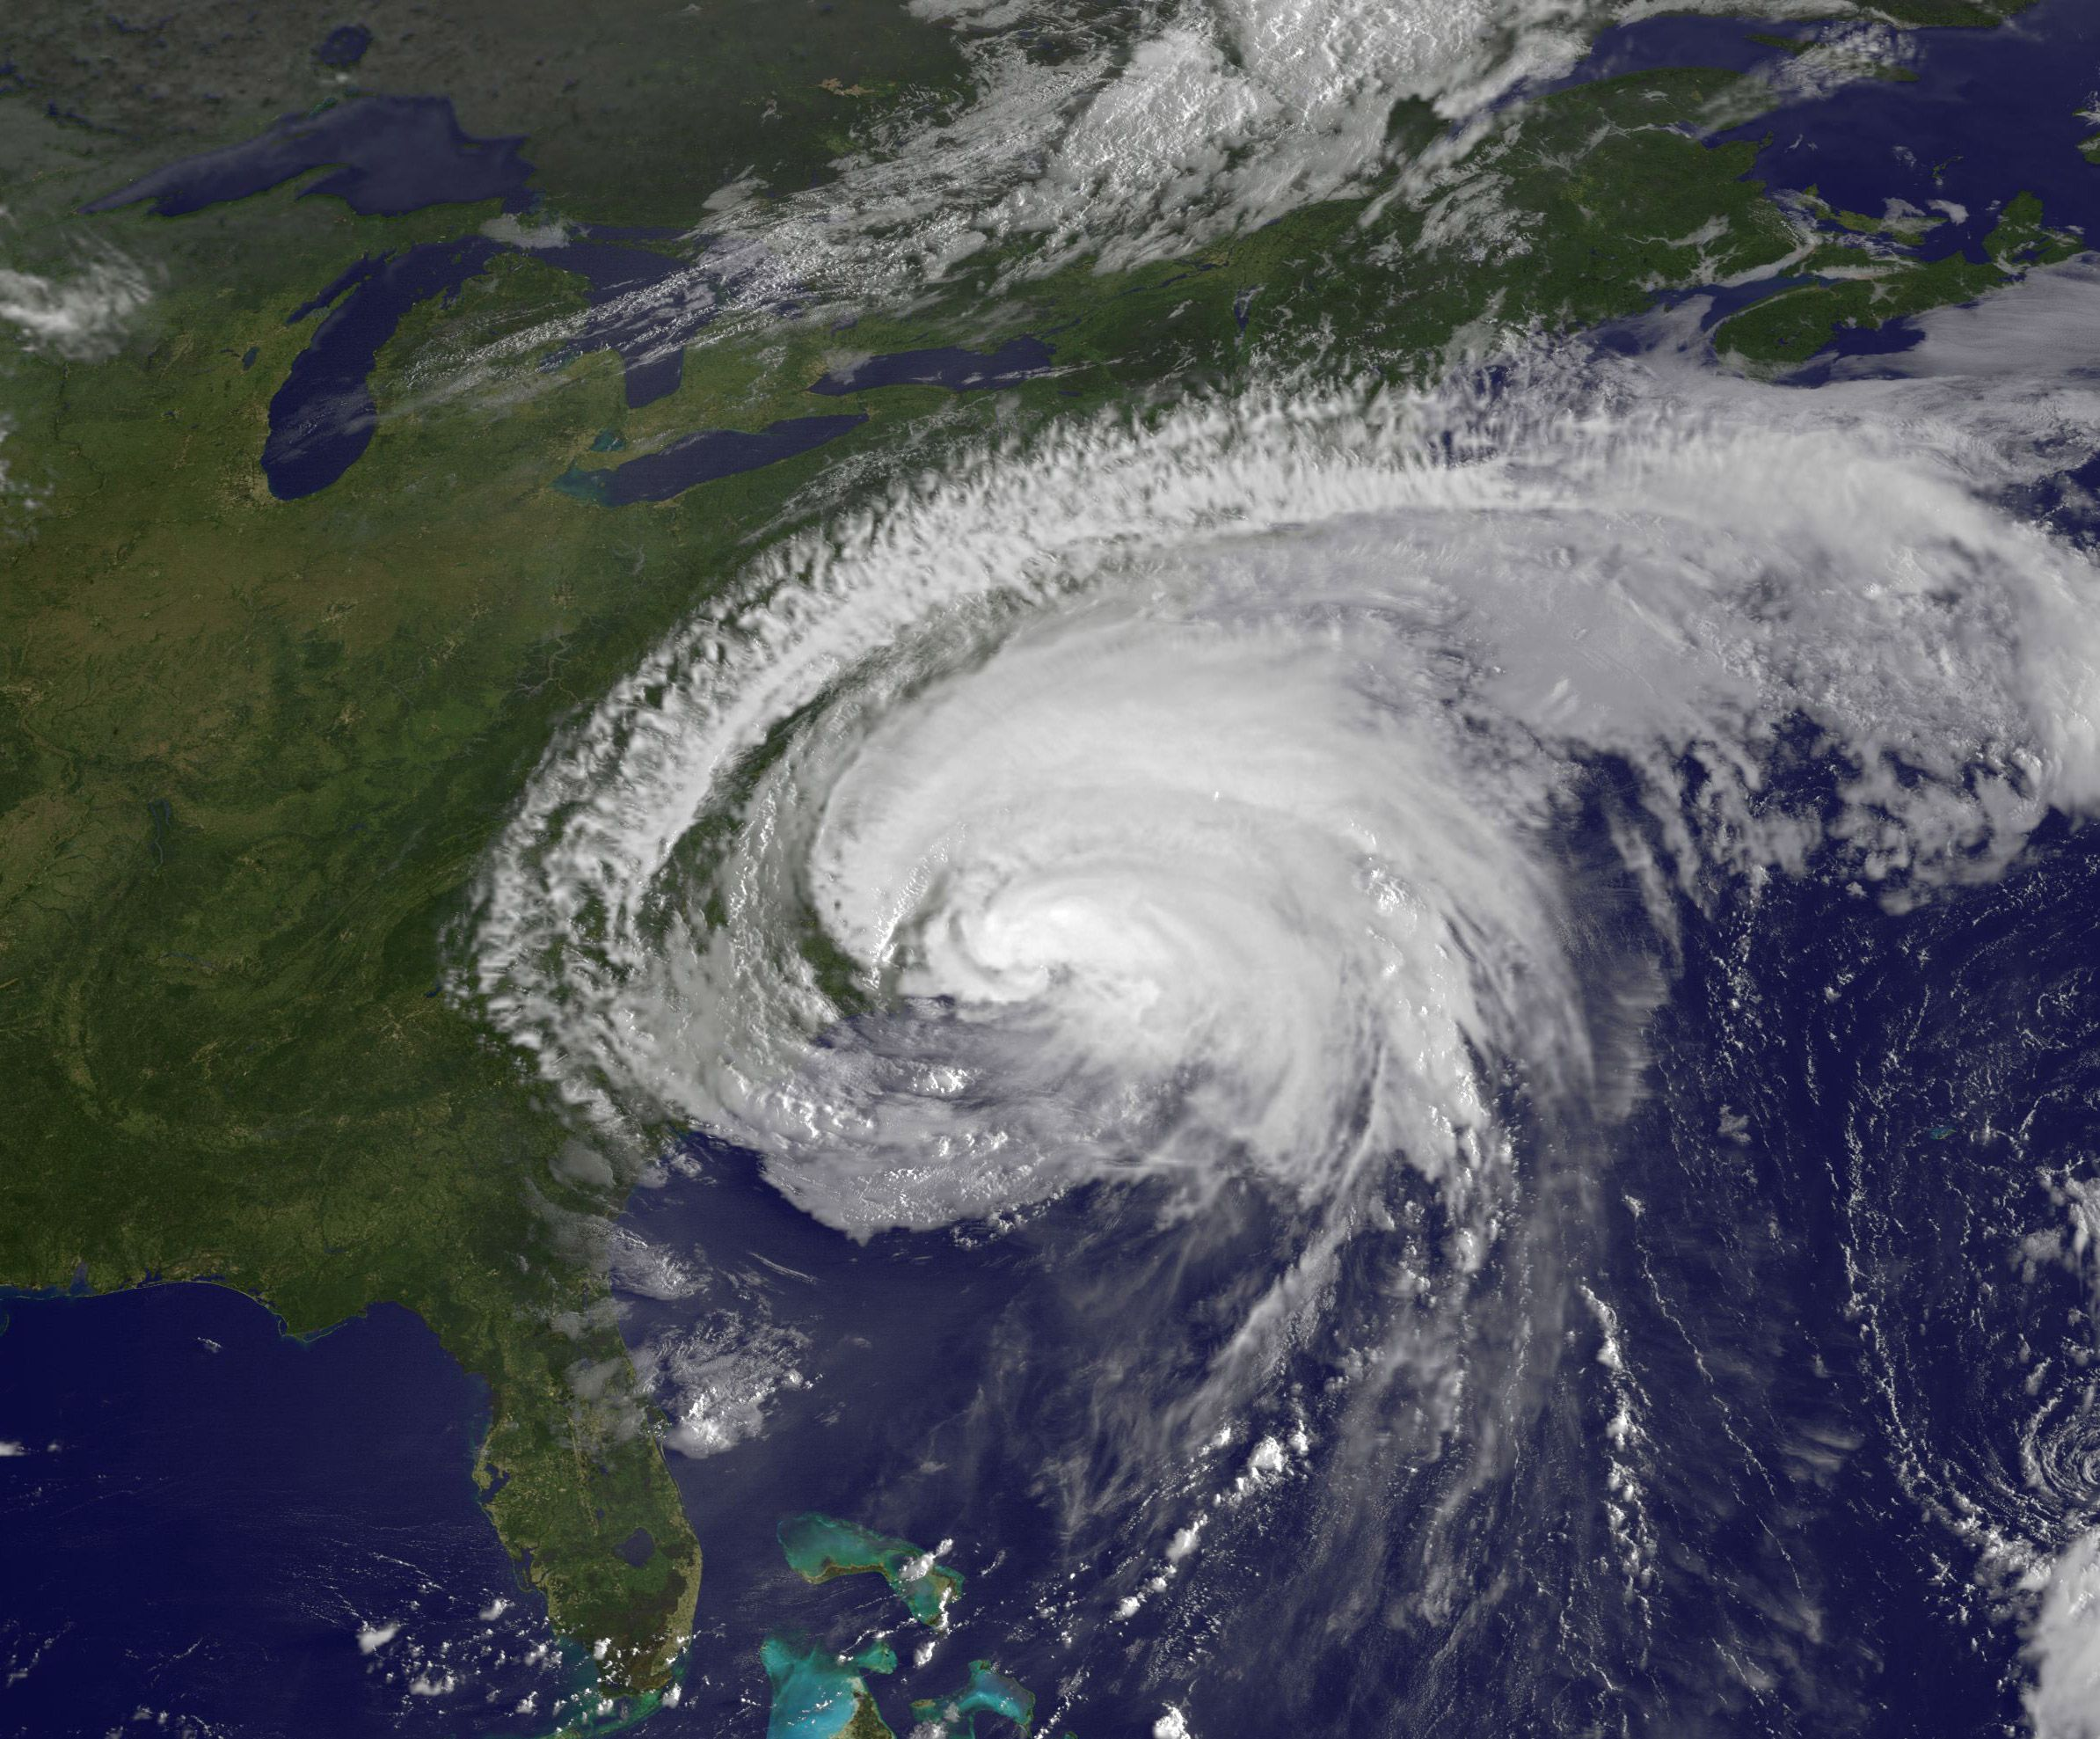 Hurricane Irene Nasa Posts Dramatic Full Earth View Updated Scenic Views Hurricane Irene Scenic